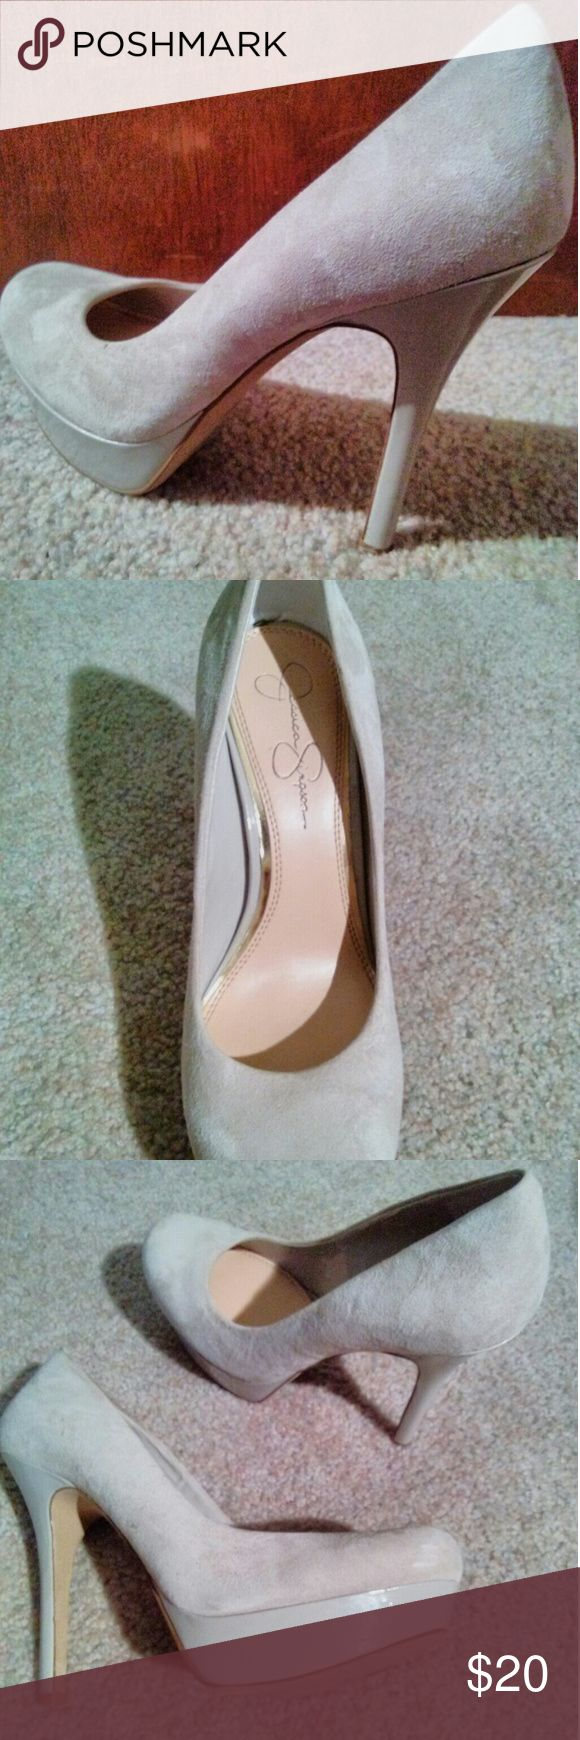 Jessica Simpson pumps Super comfortable Jessica Simpson beige, suede platform pumps Jessica Simpson Shoes Heels